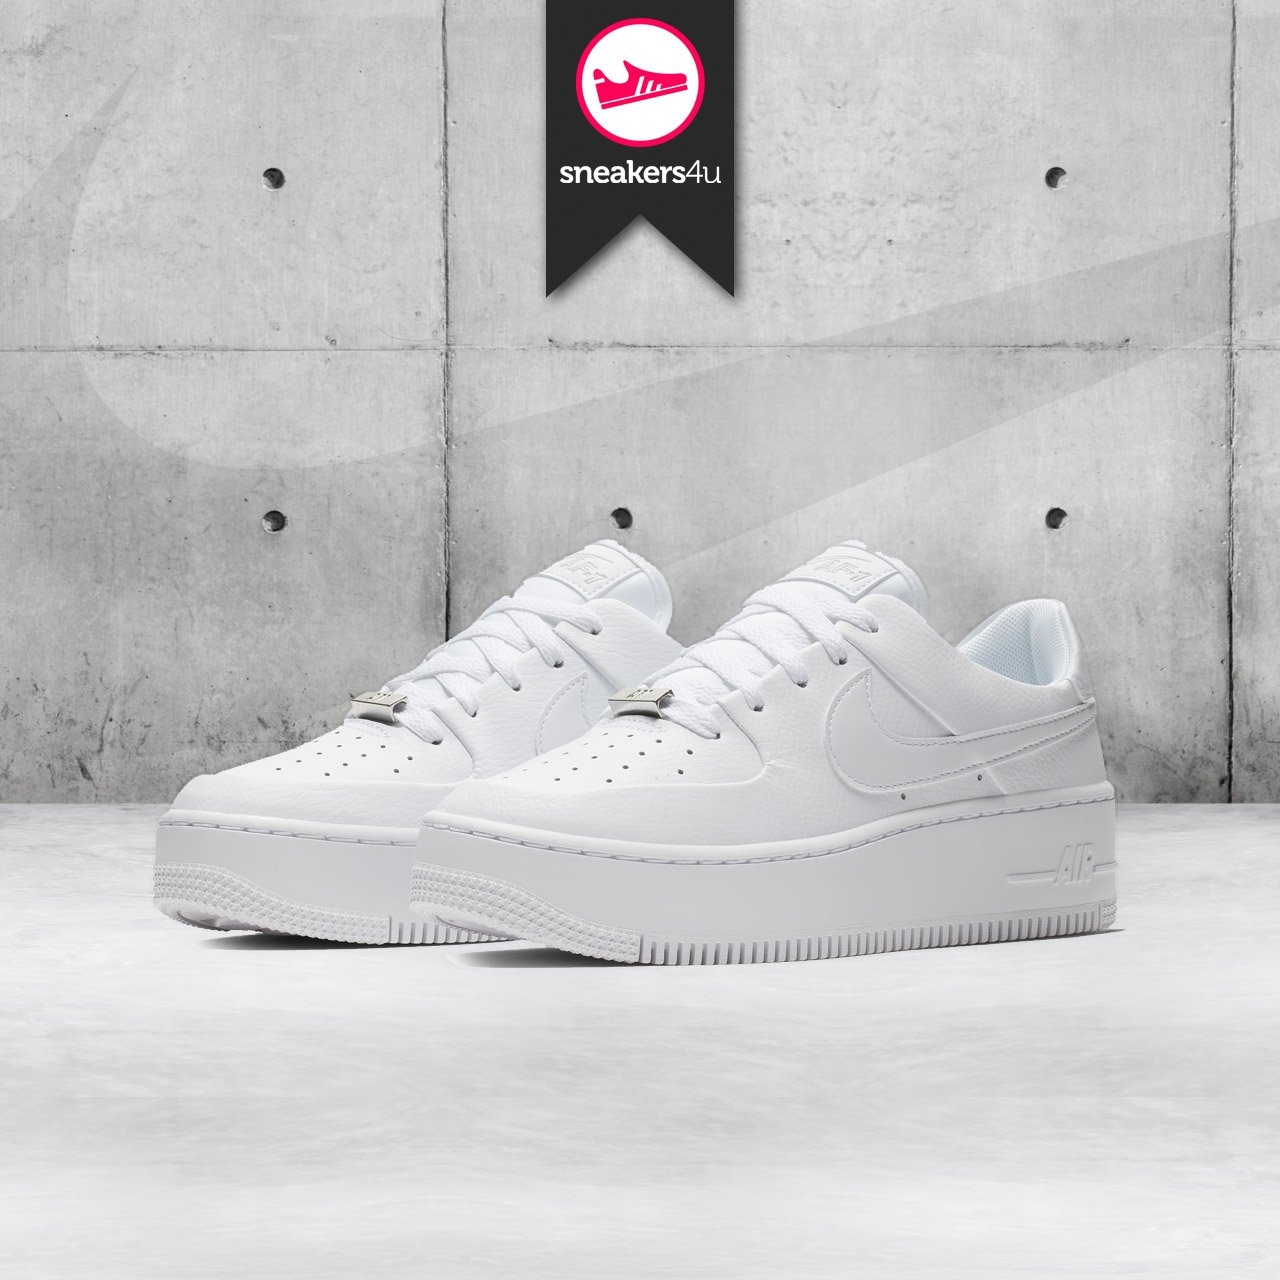 Nieuw : de Nike Air Force 1 Sage | Sneakers4u